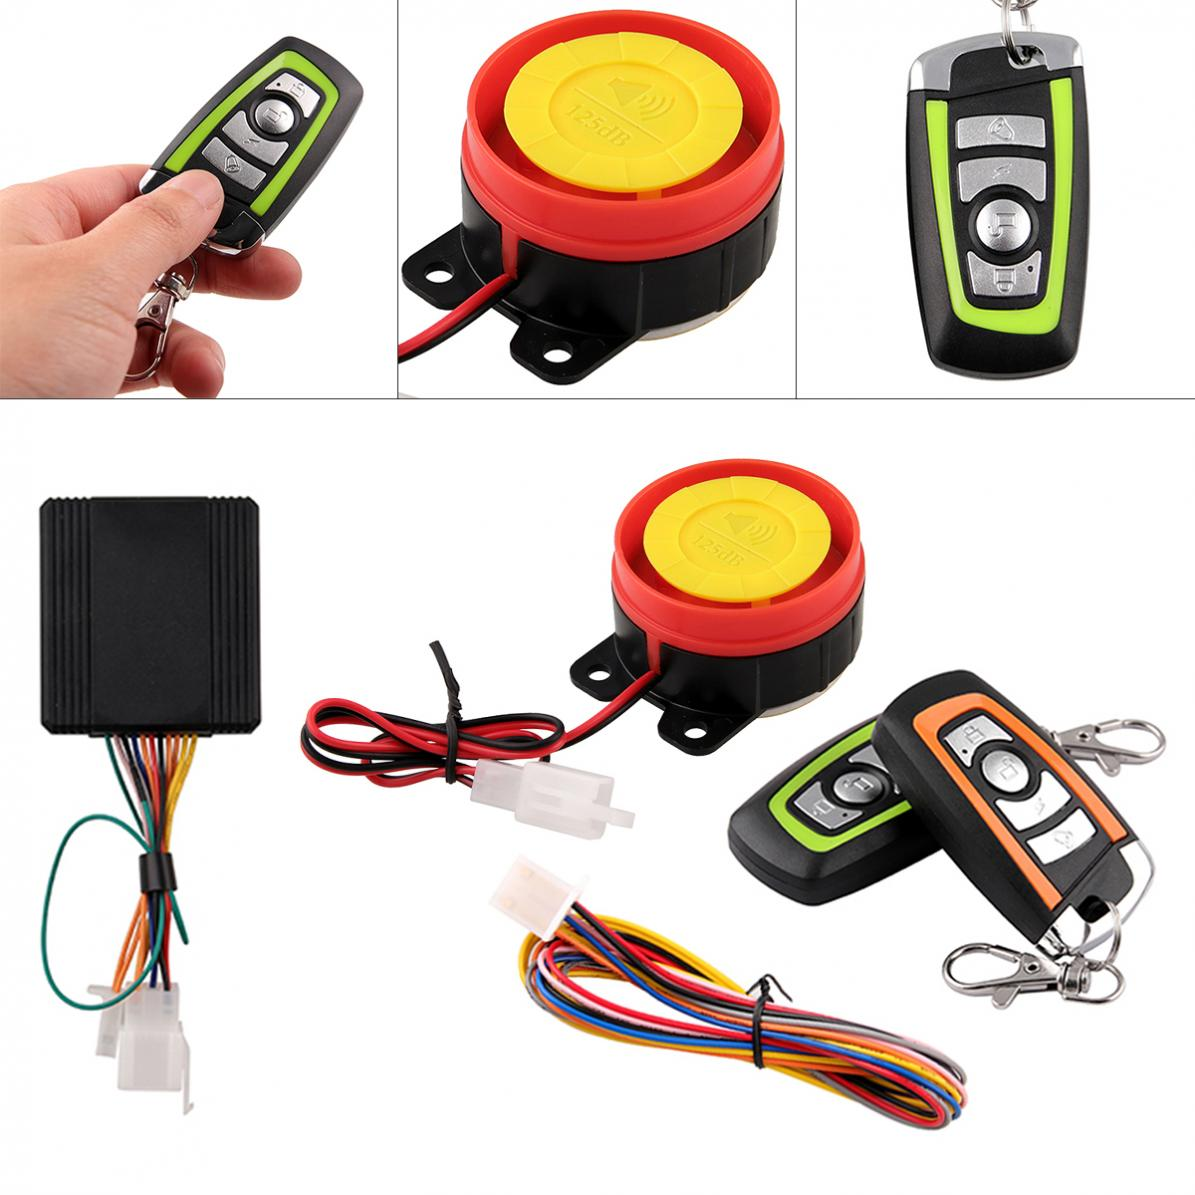 125db Motorcycle Two Way Burglar Alarm Anti-theft Alarm With Engine Start Remote Control Key For Motorcycle Anti-theft System